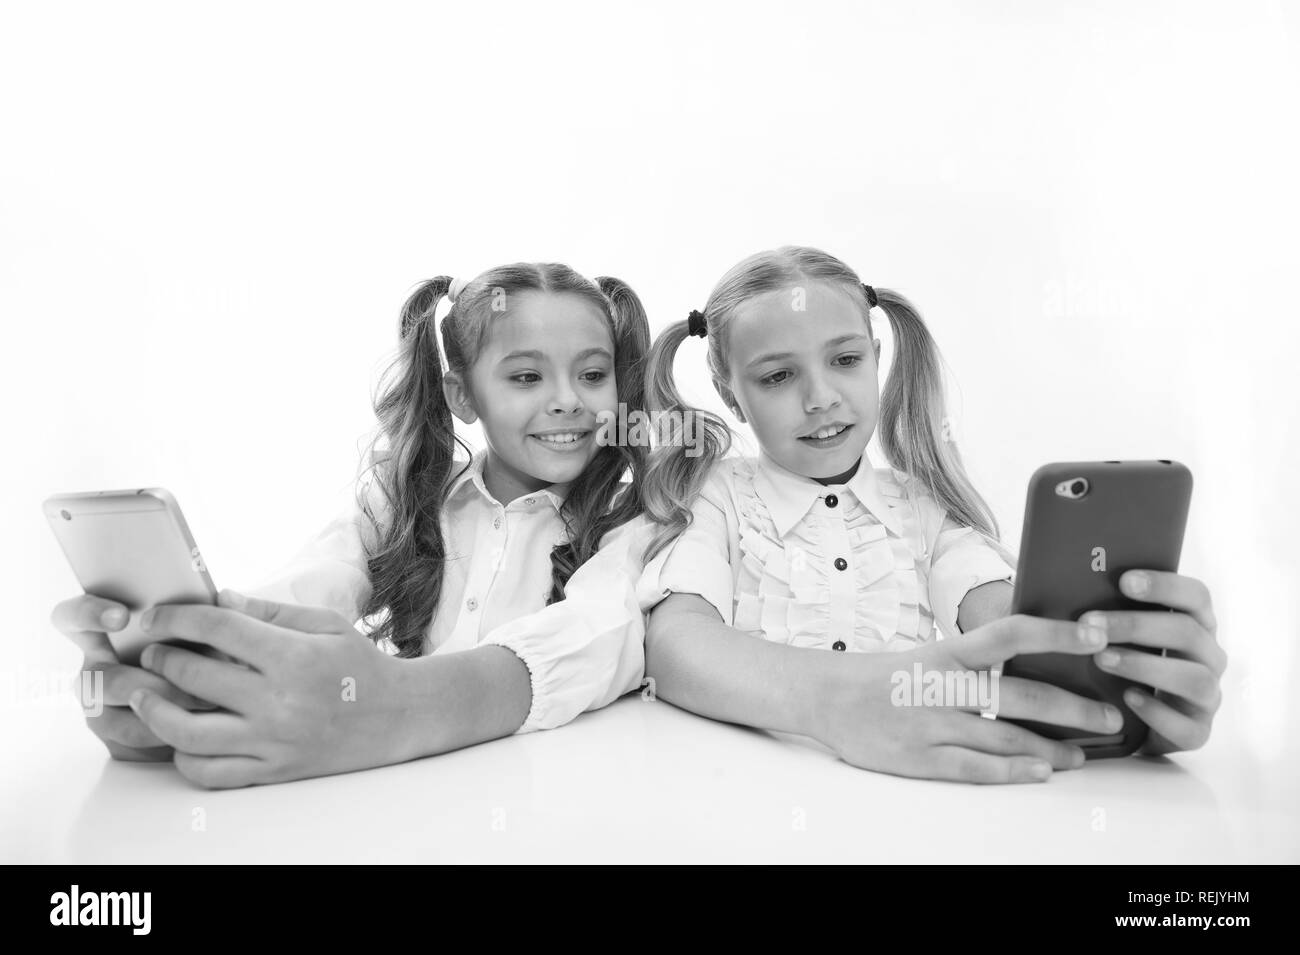 blogging at school and internet dependence. little happy girls blogging on smartphones. little girls back to school. technologies making life easier. internet dependence - Stock Image